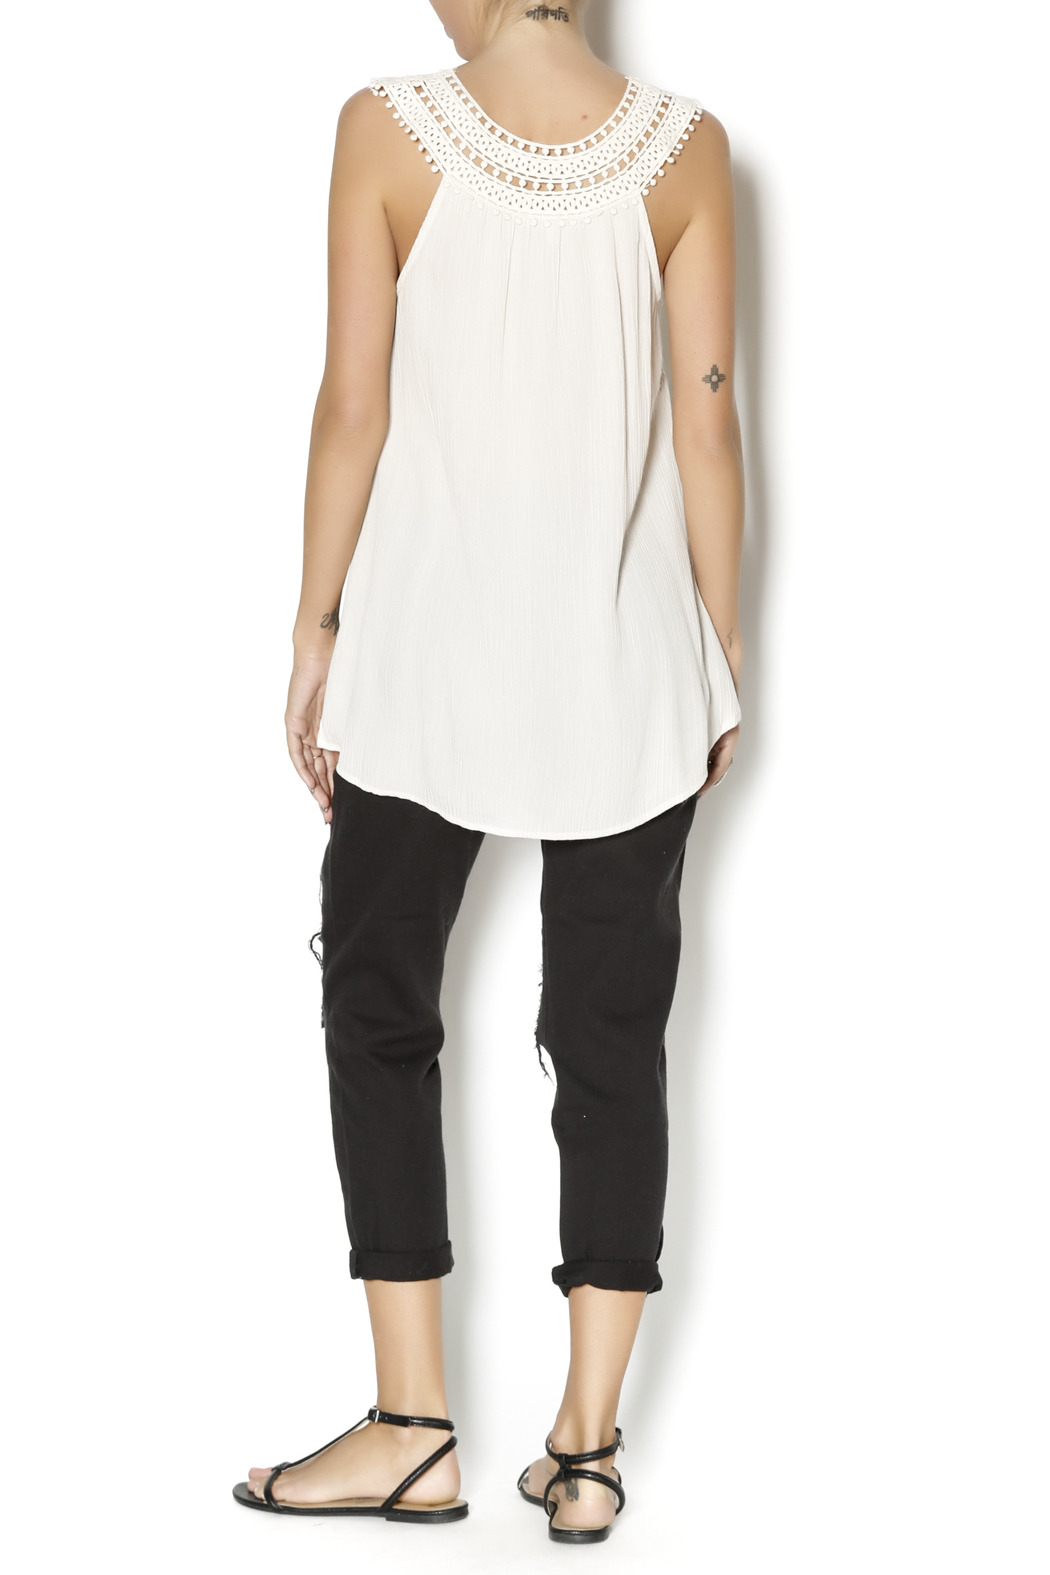 Blu Pepper Natural Rounded Top - Side Cropped Image